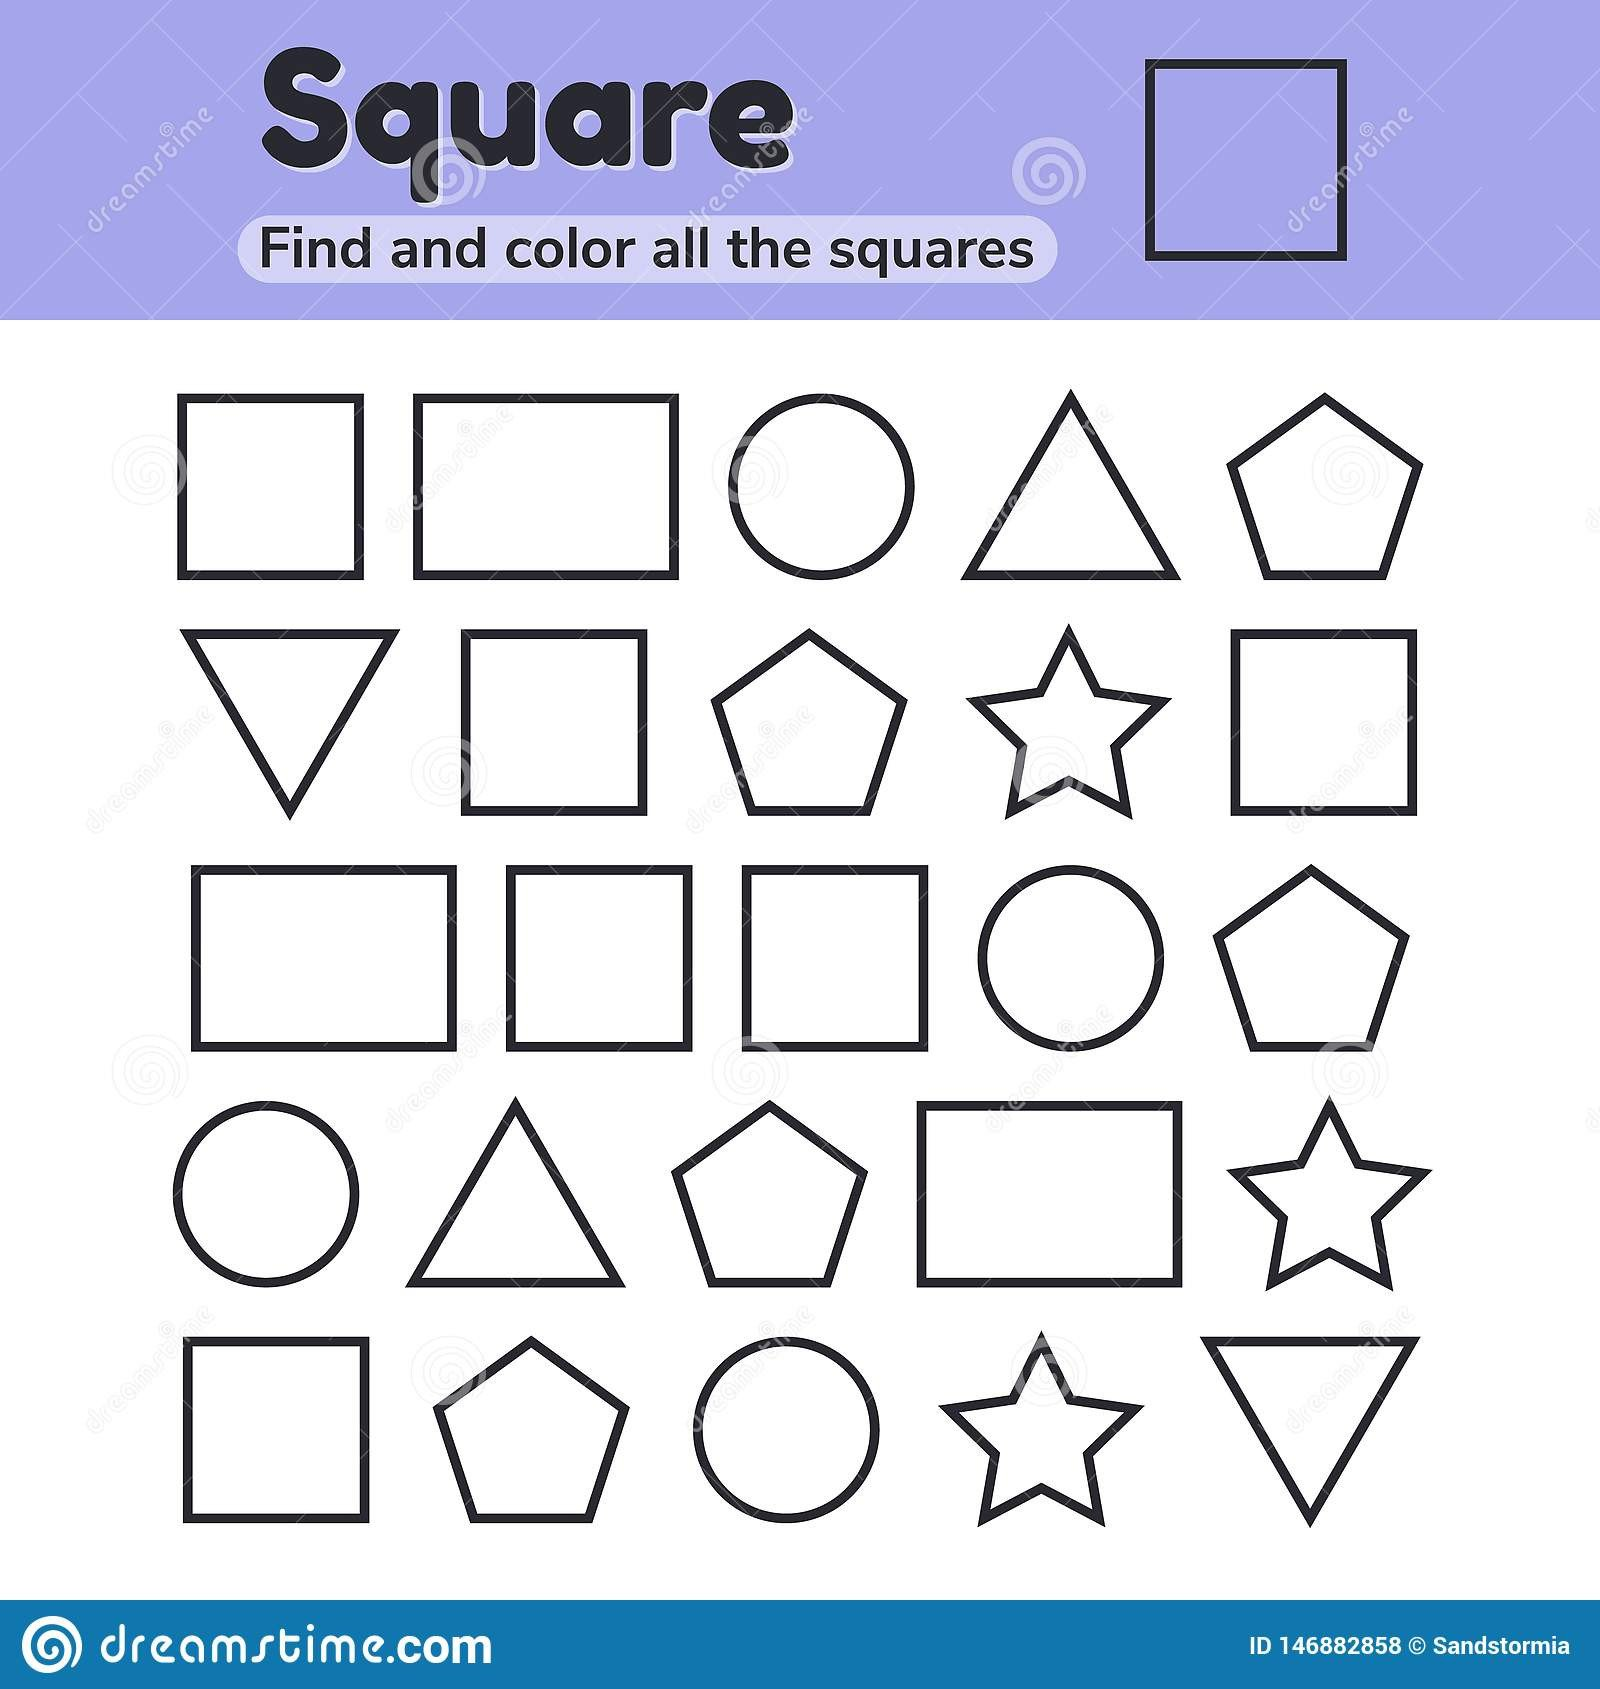 Shapes Worksheet for Kindergarten Educational Worksheet for Kids Kindergarten Preschool and